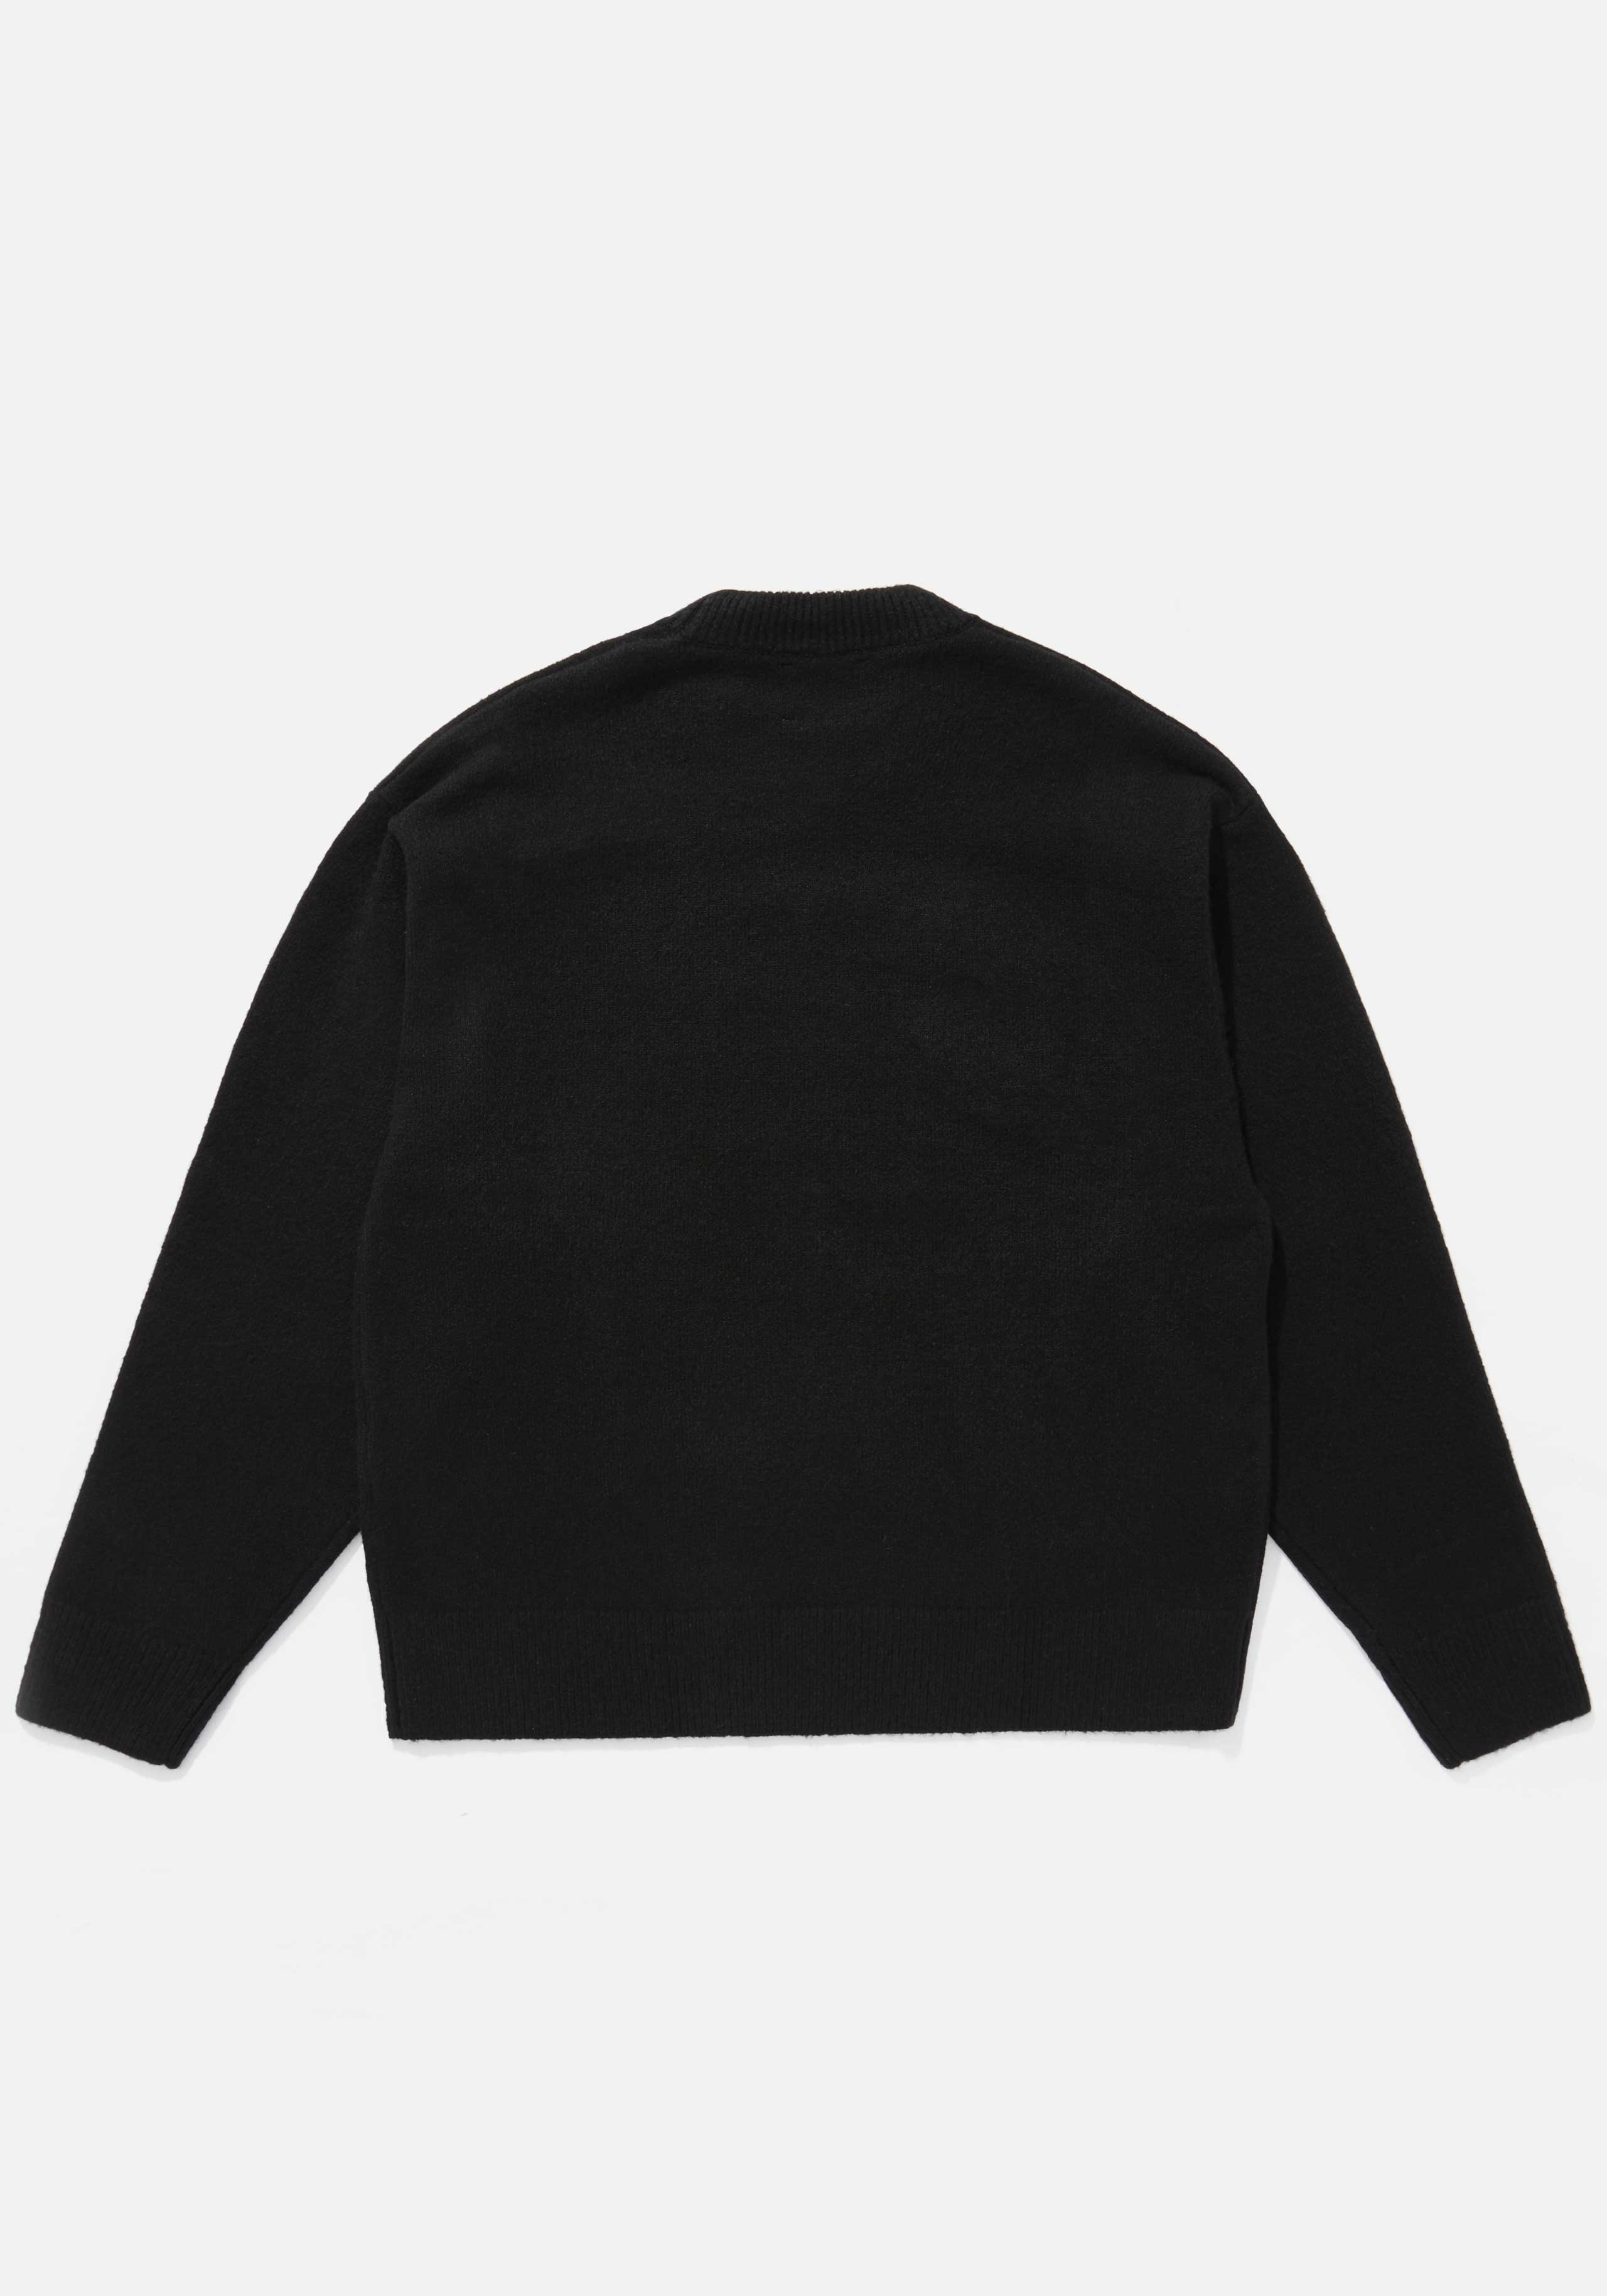 mki heavy knit crewneck 2